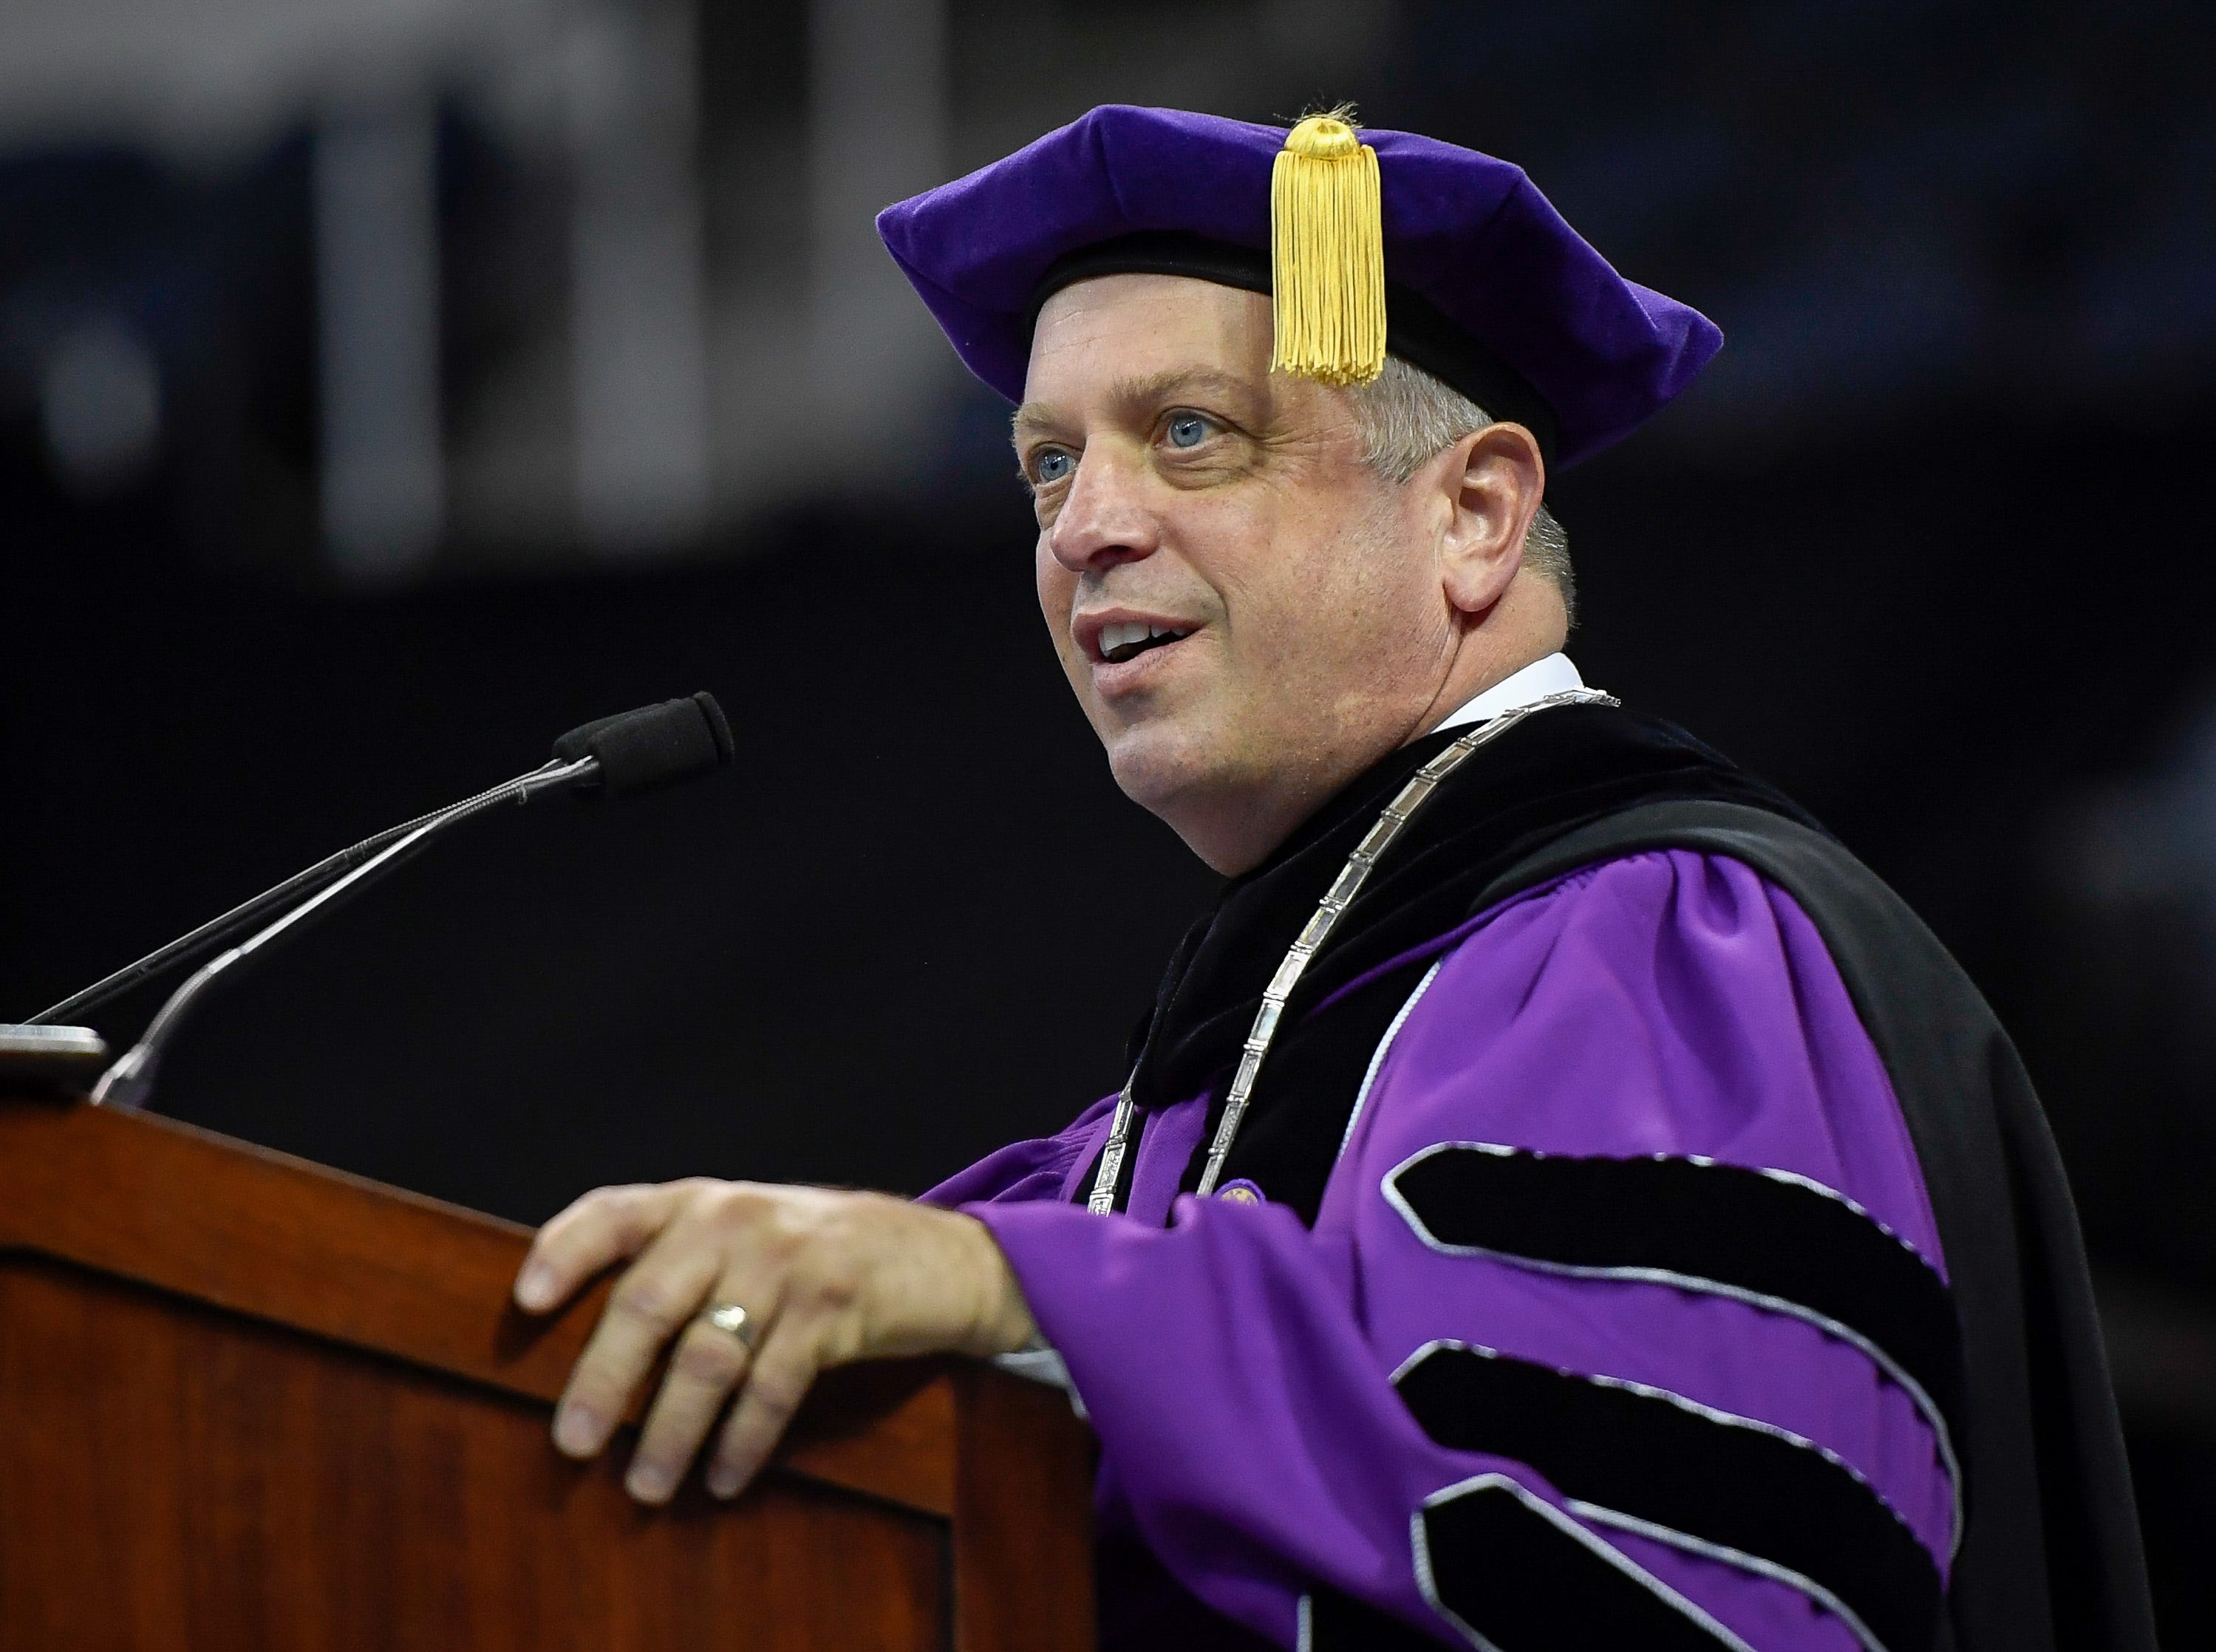 University of Evansville President Mr. Christopher Pietruszkiewicz addresses graduates, family and friends attending the school's 161st commencement ceremony held at the Ford Center Saturday, May 11, 2019.